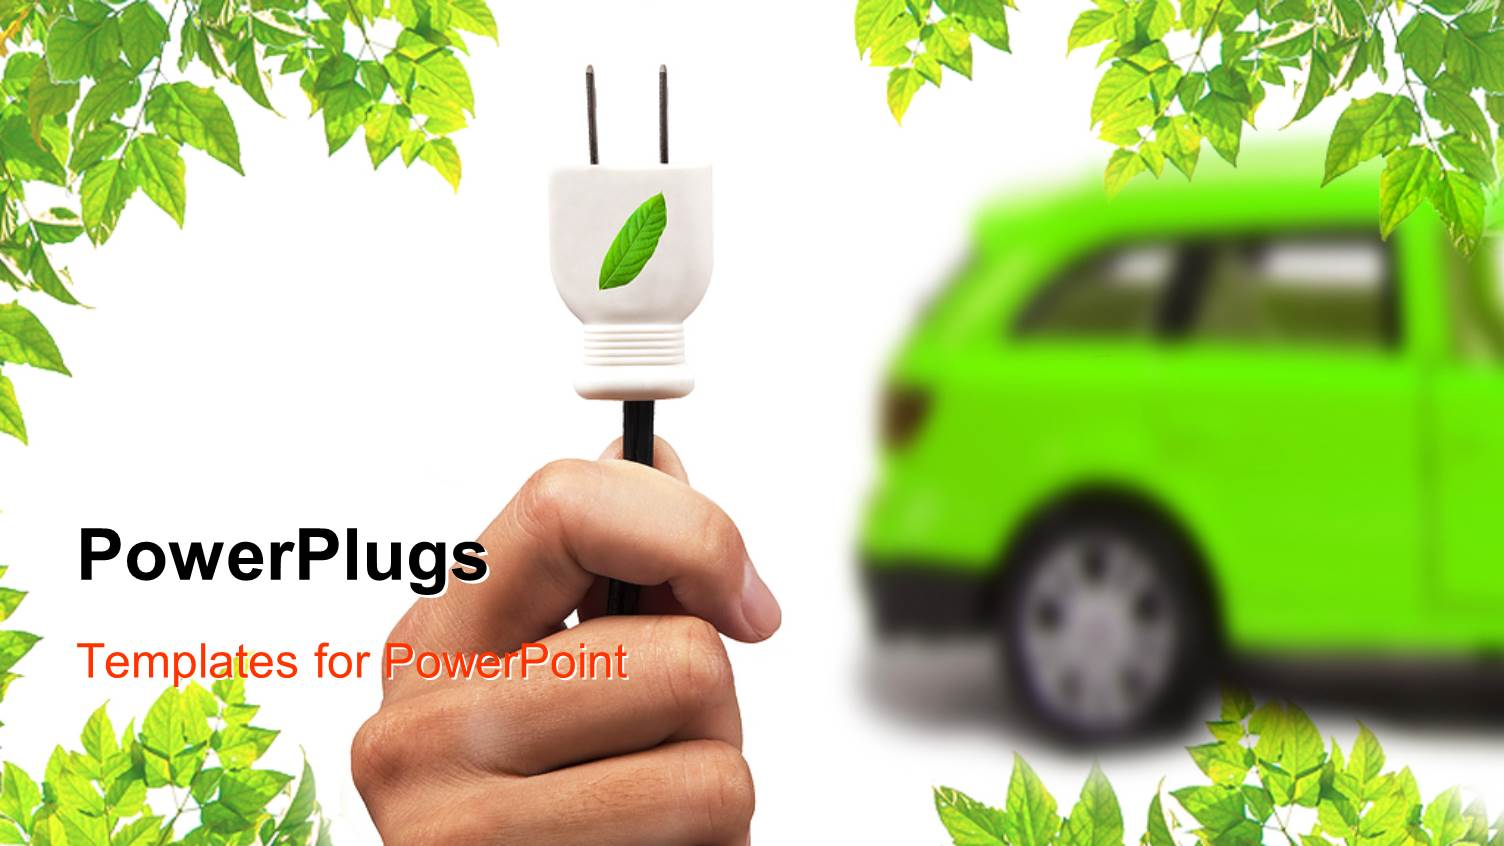 5000 electrical powerpoint templates w electrical themed backgrounds elegant slide deck enhanced with green electric car hand with white leaf motif plug template size toneelgroepblik Image collections